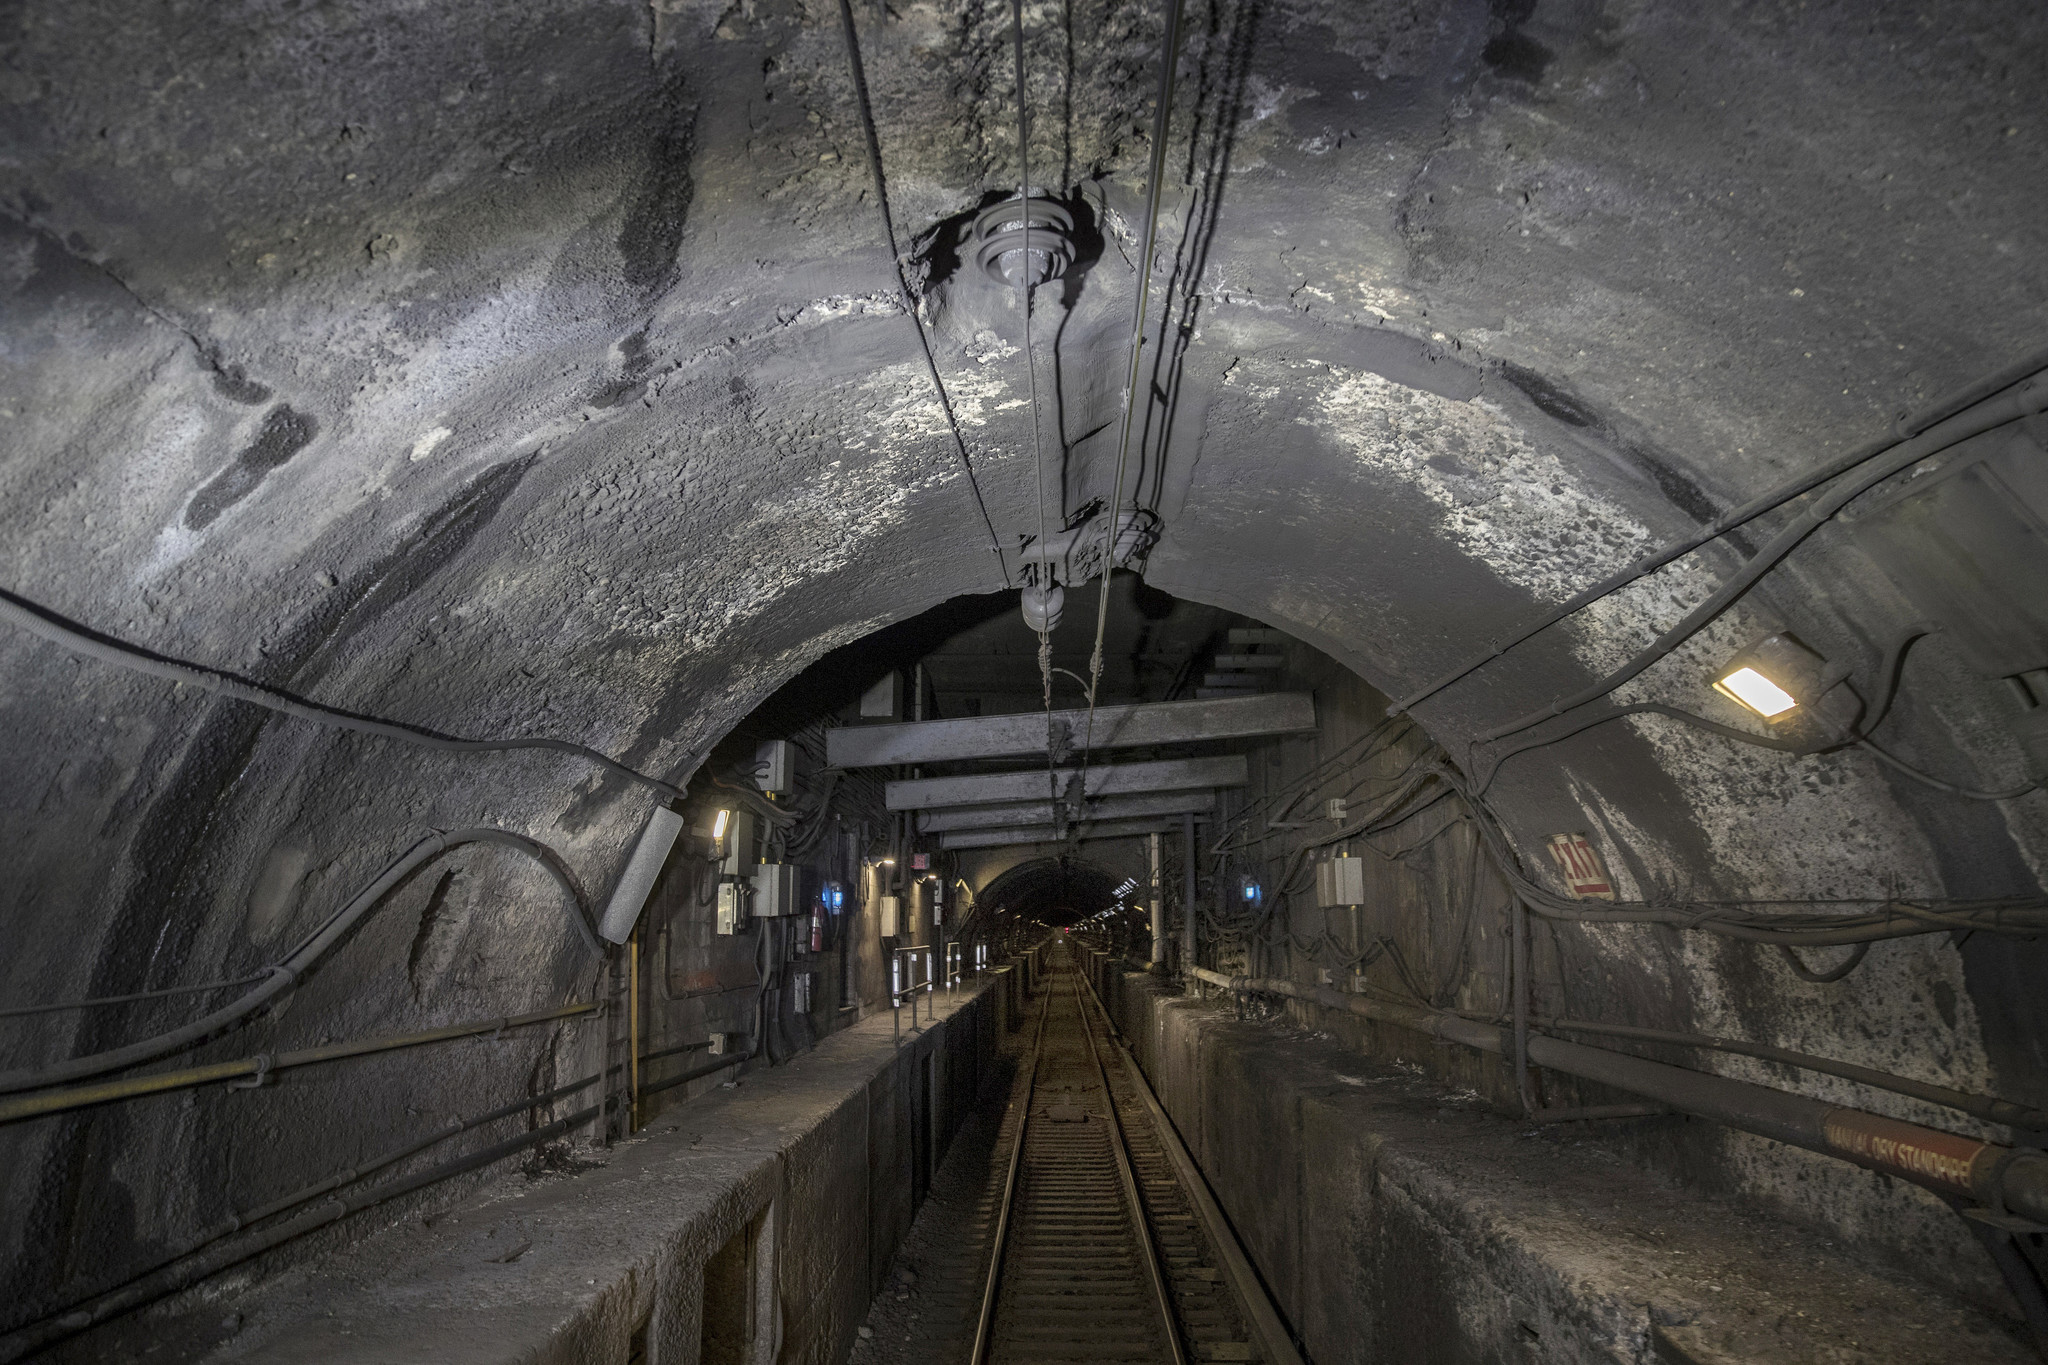 Feds to tap Cuomo's L train experts to fix crumbling Hudson River tunnels